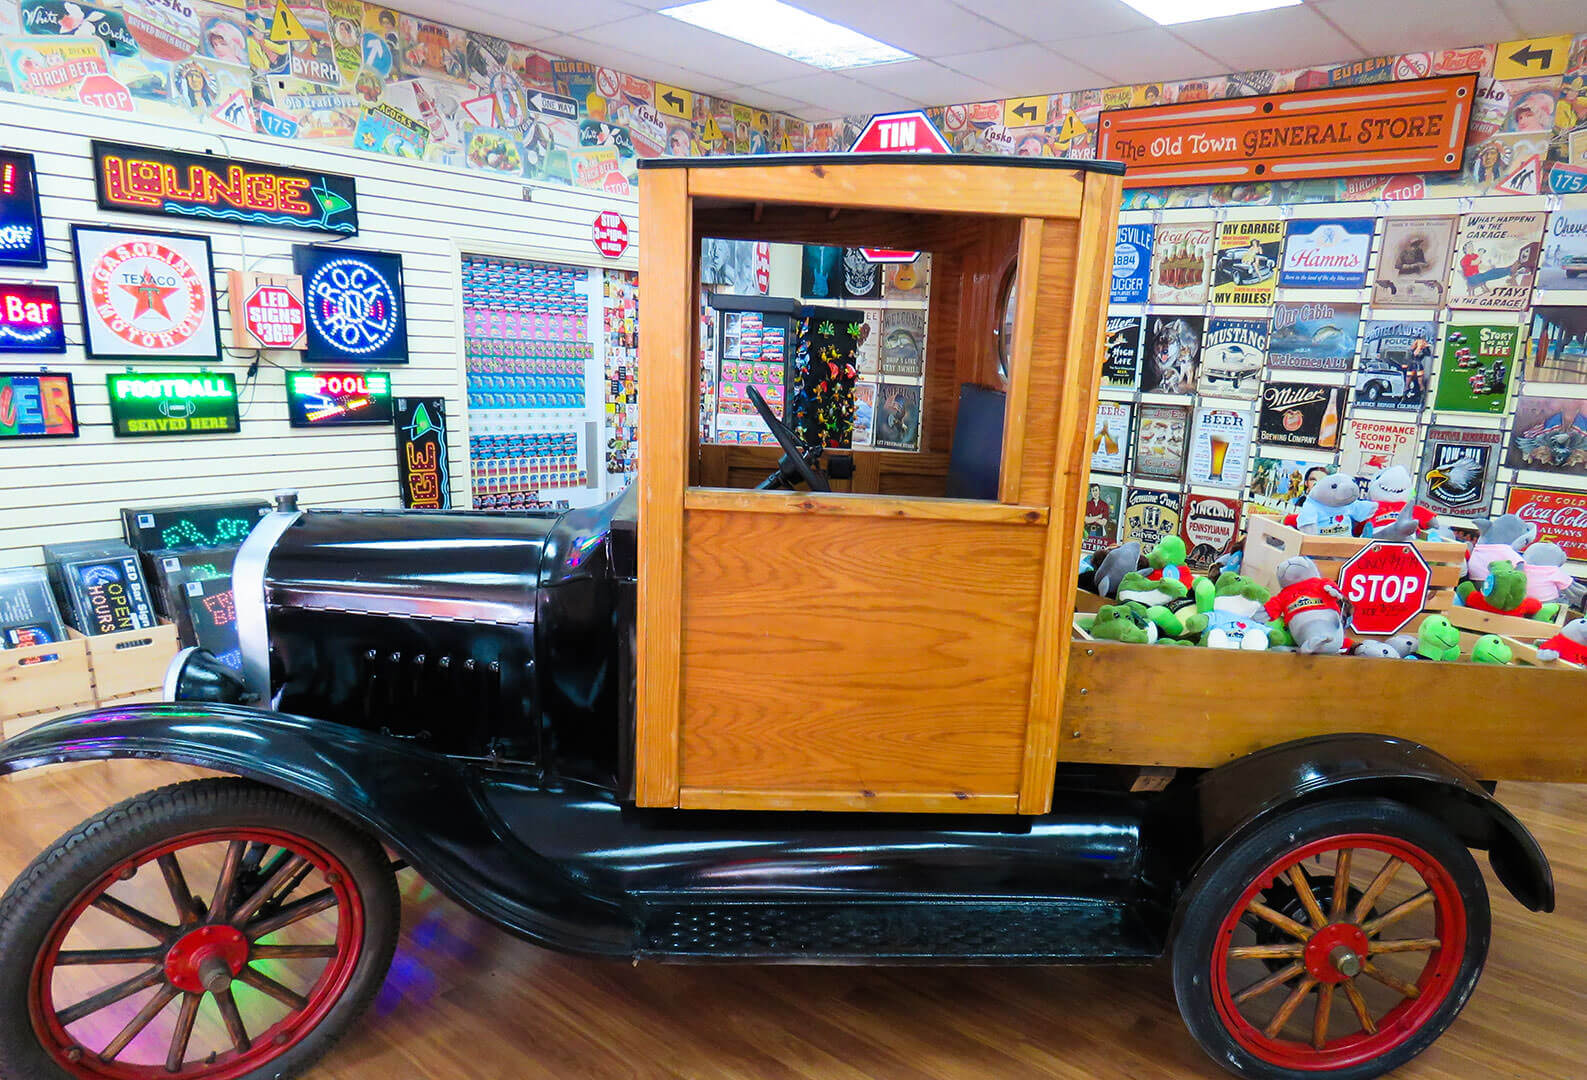 Compras em Kissimmee: Old Town General Store